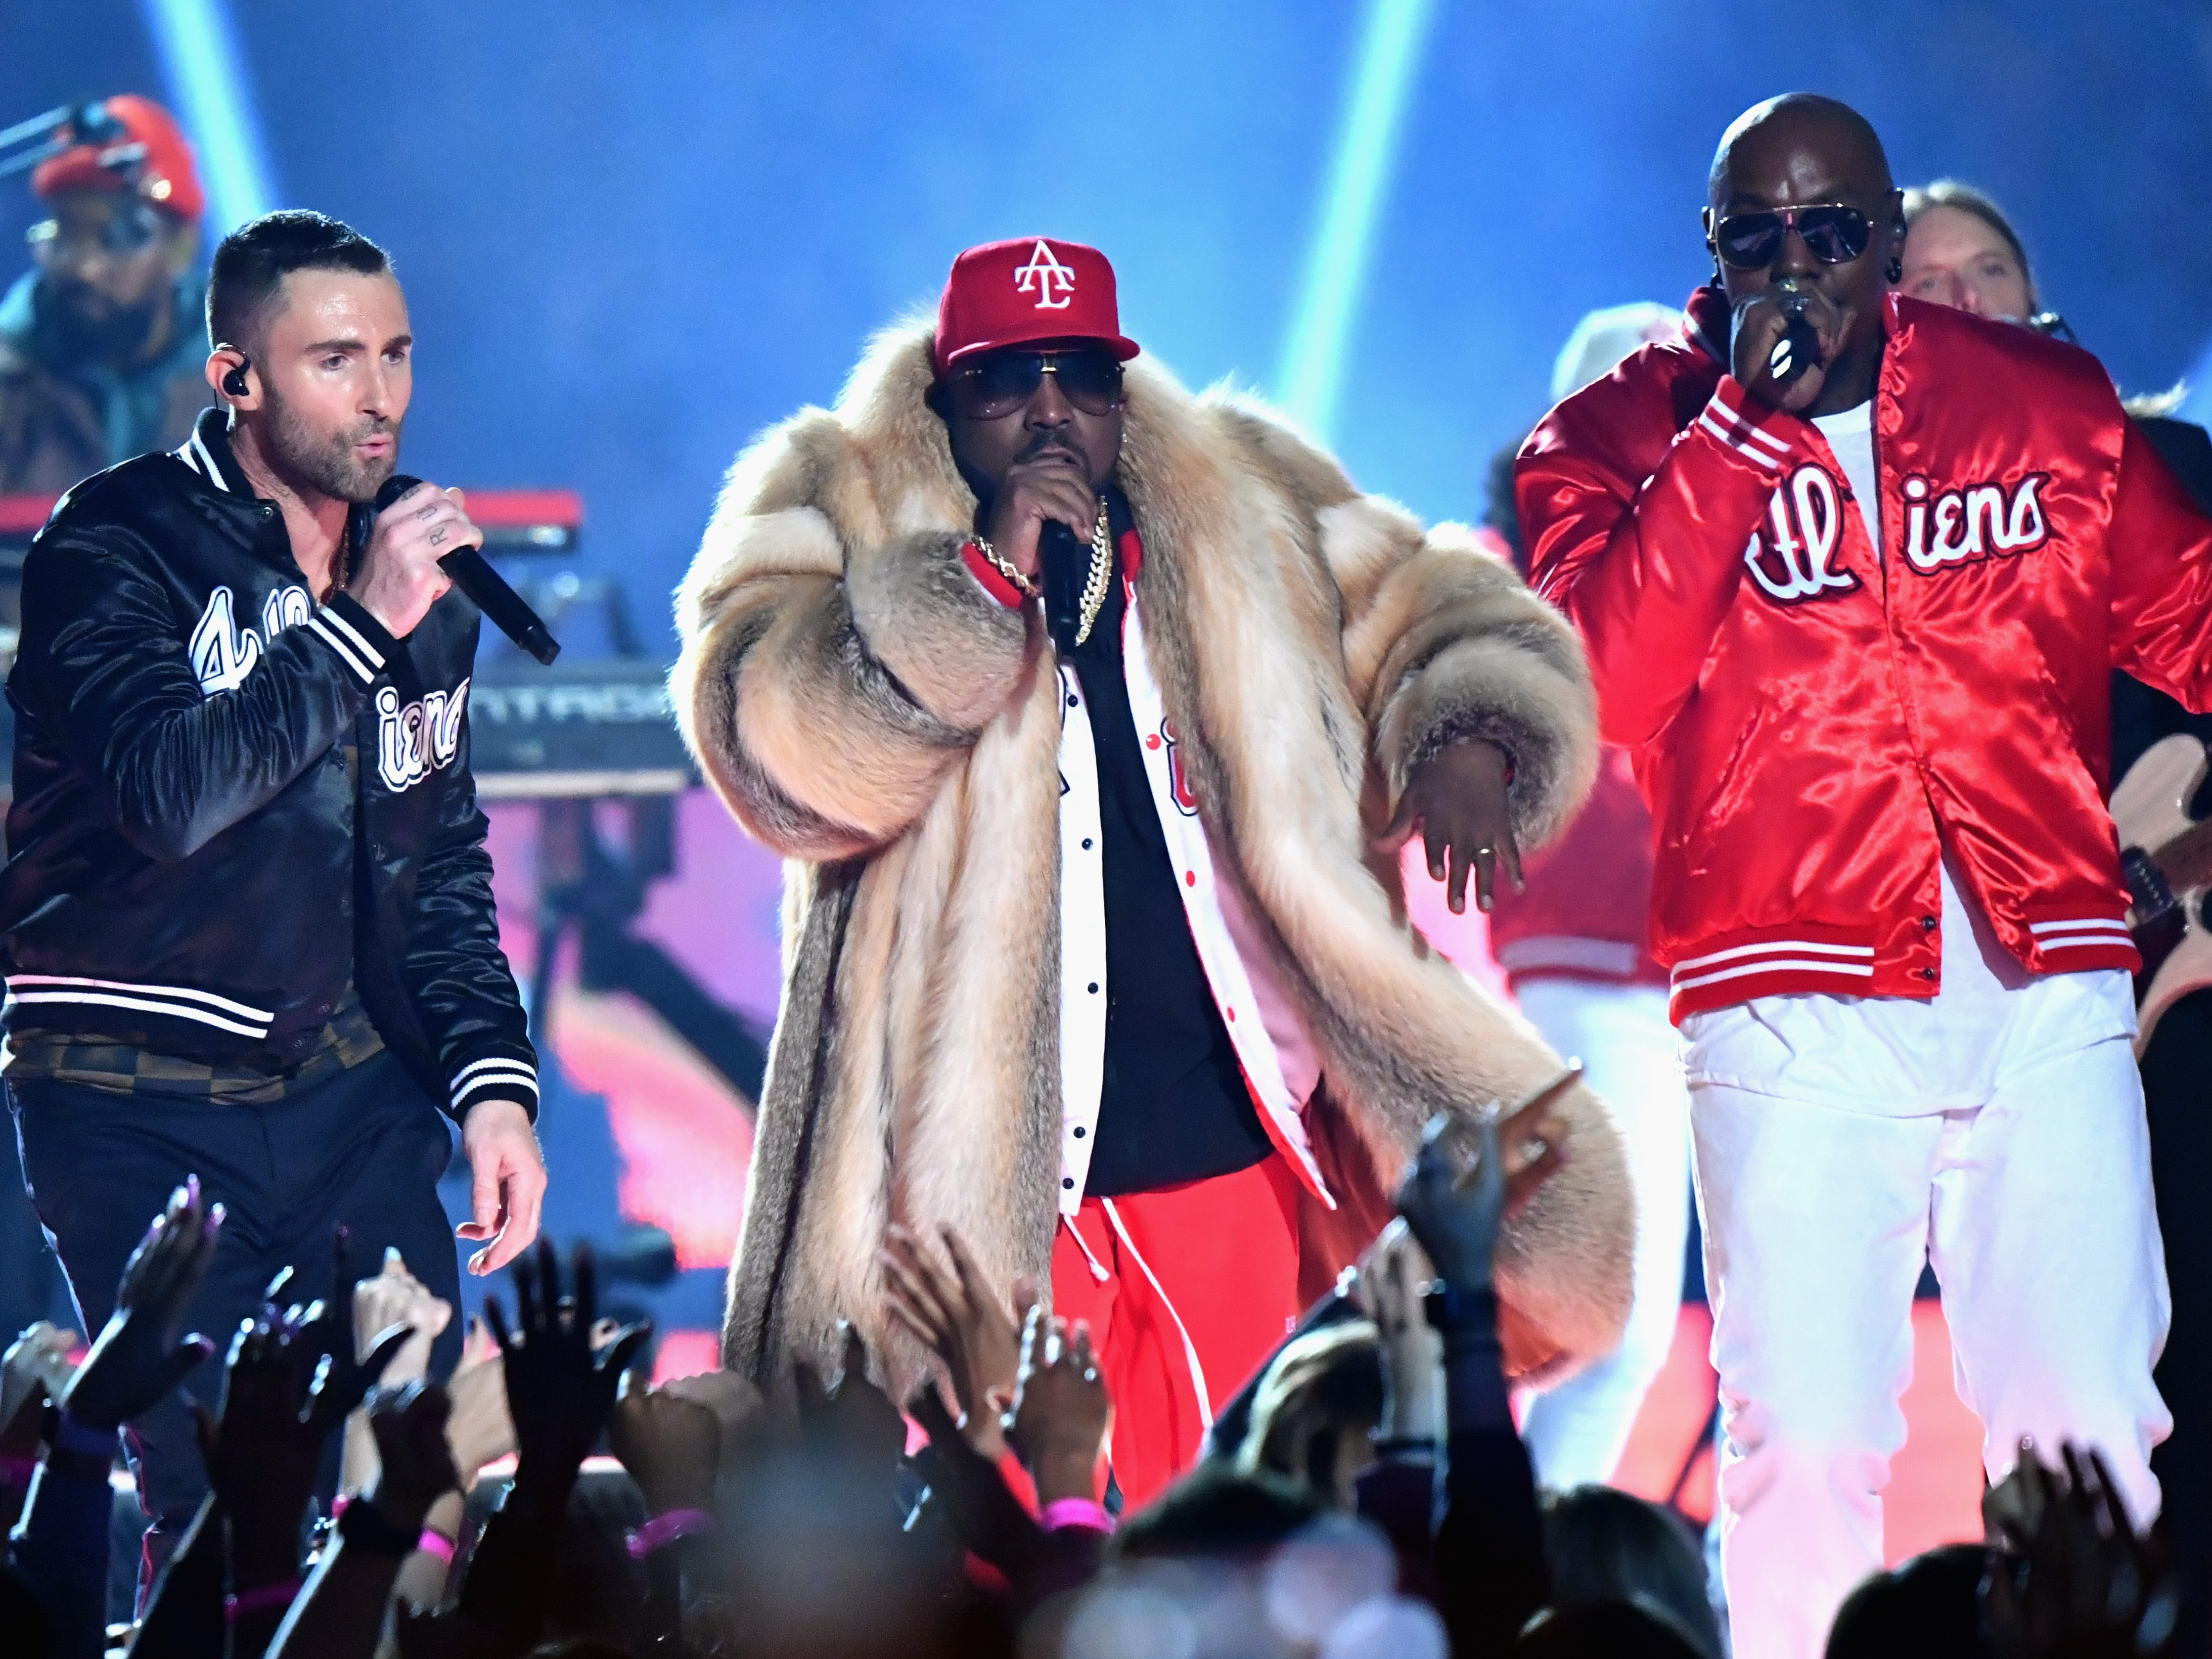 Adam Levine is joined by featured performers Travis Scott, center, and Big Boi of Outkast during Maroon 5's Super Bowl halftime show in Atlanta on Feb. 3, 2019.